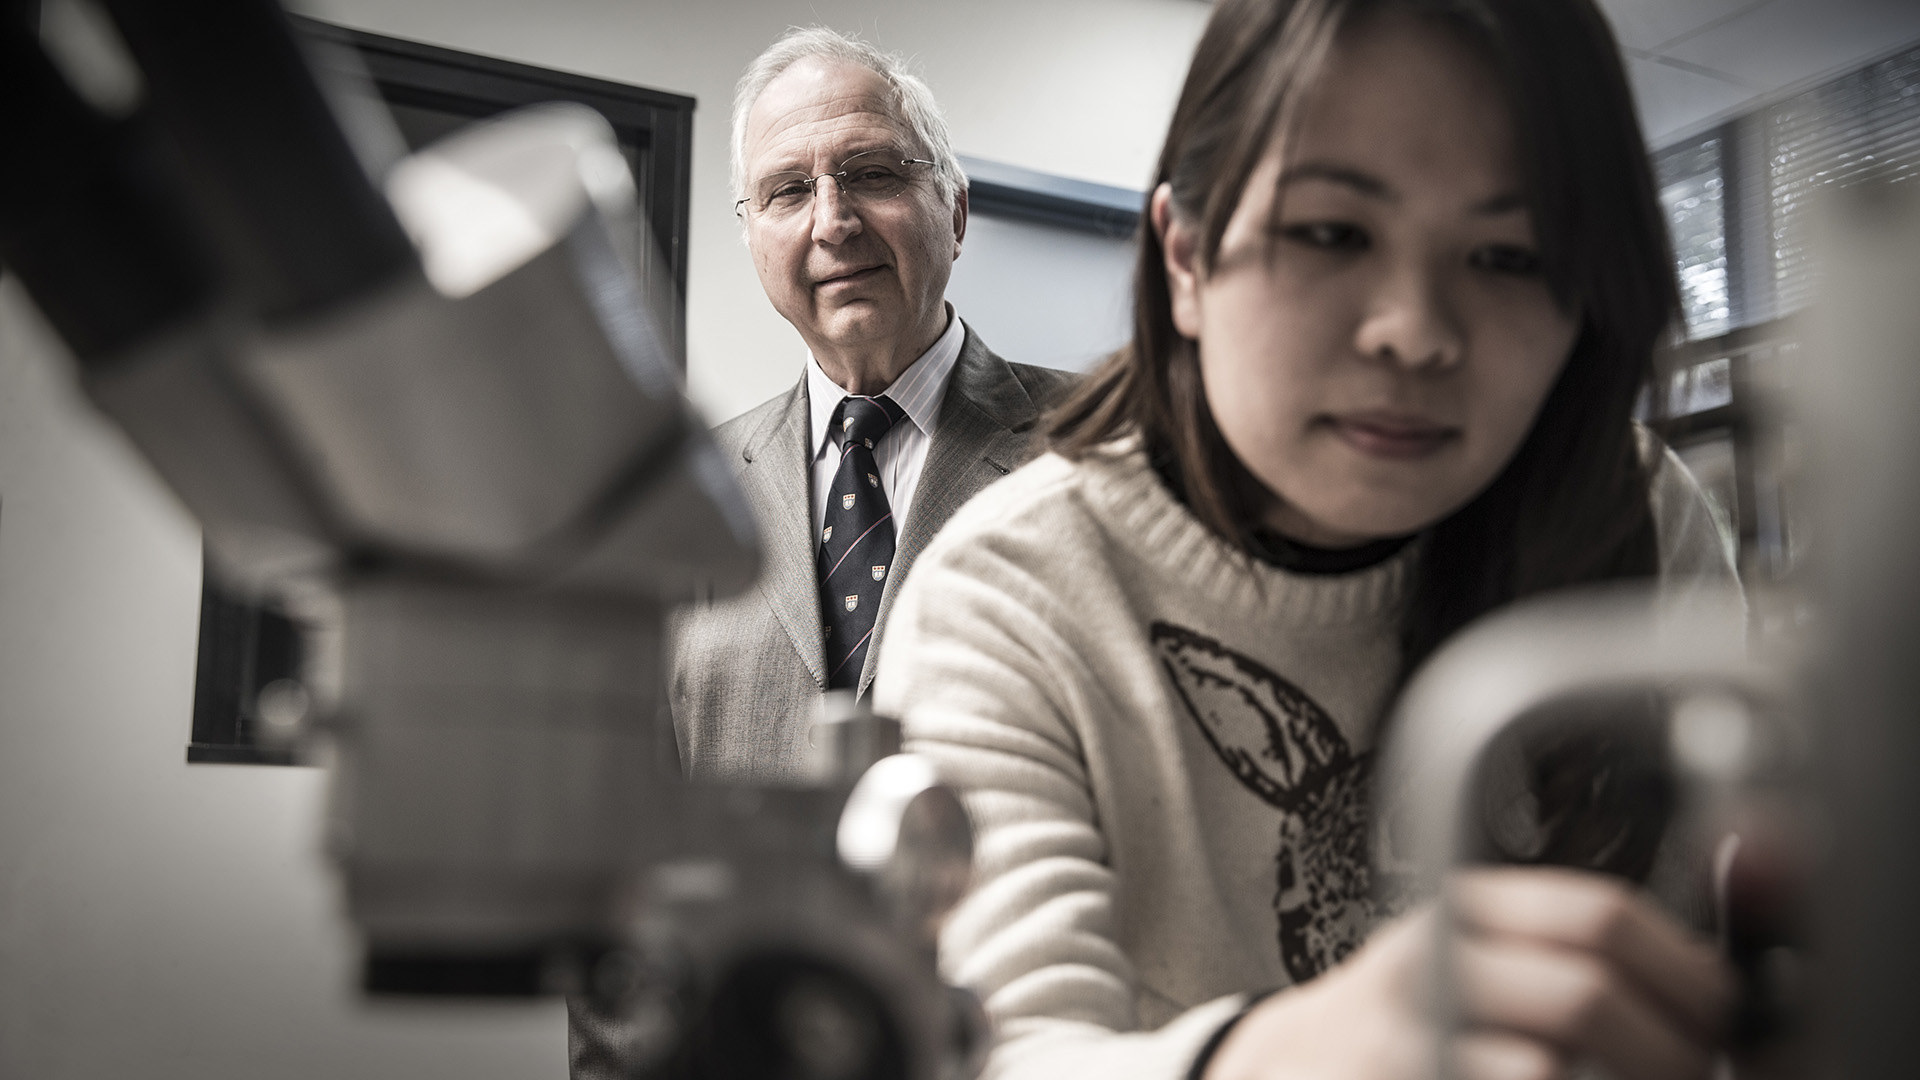 UOW scientists join European Space Agency lunar missions team  - Anatoly Rozenfeld and Dr Linh Tran - UOW scientists join European Space Agency lunar missions team